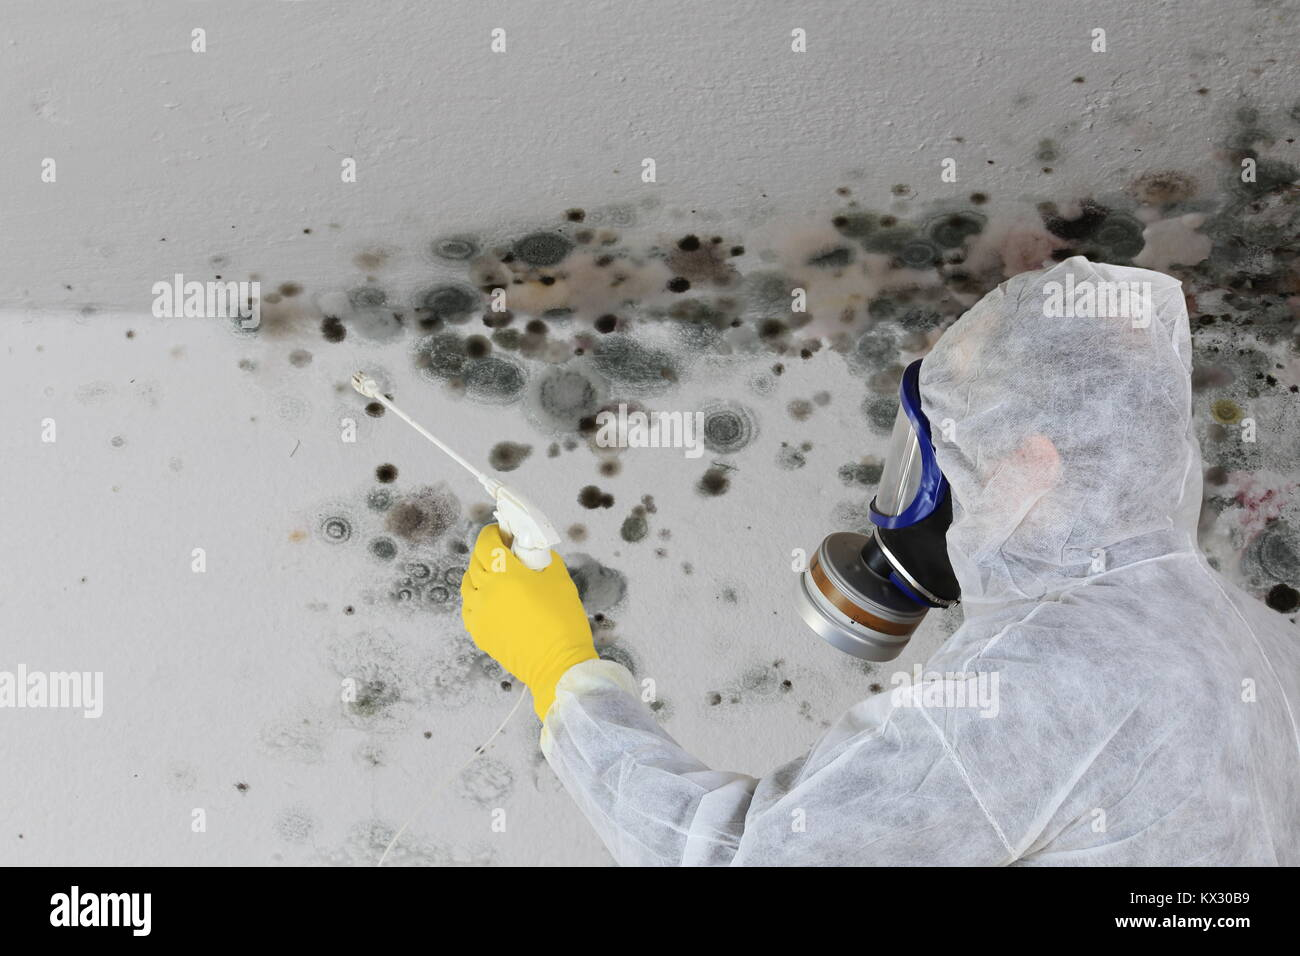 A Man removing Mold fungus with respirator mask - Stock Image